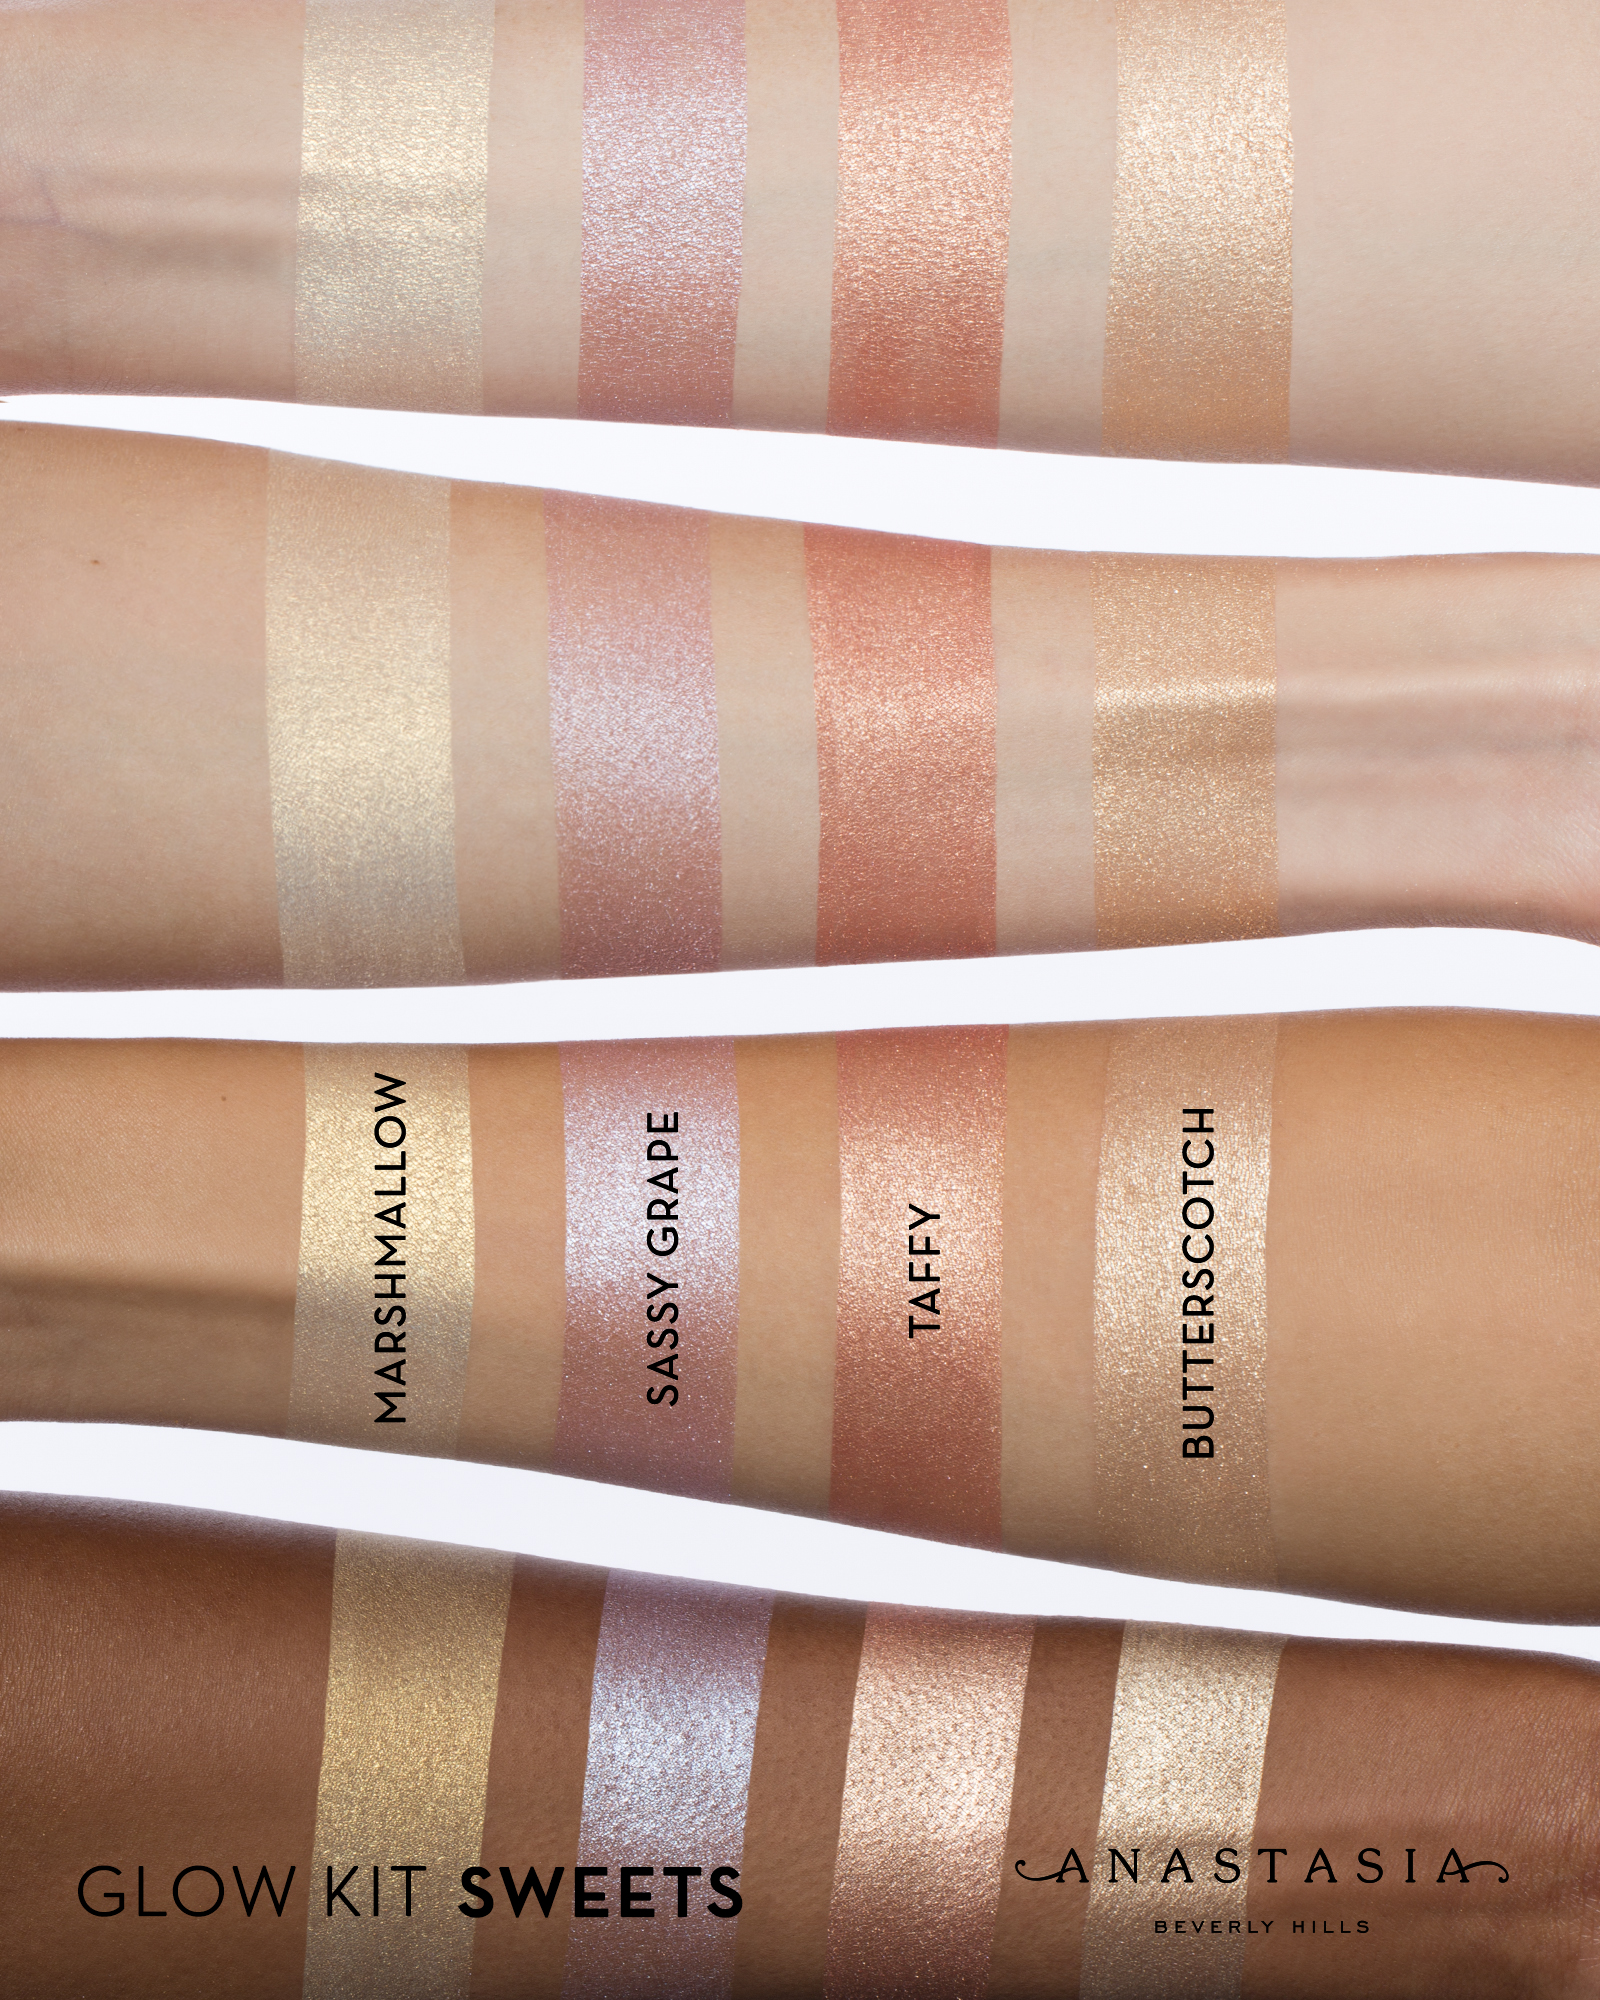 Step out of your comfort zone and try one of these fun colored highlighters from the Sweets Glow Kit.